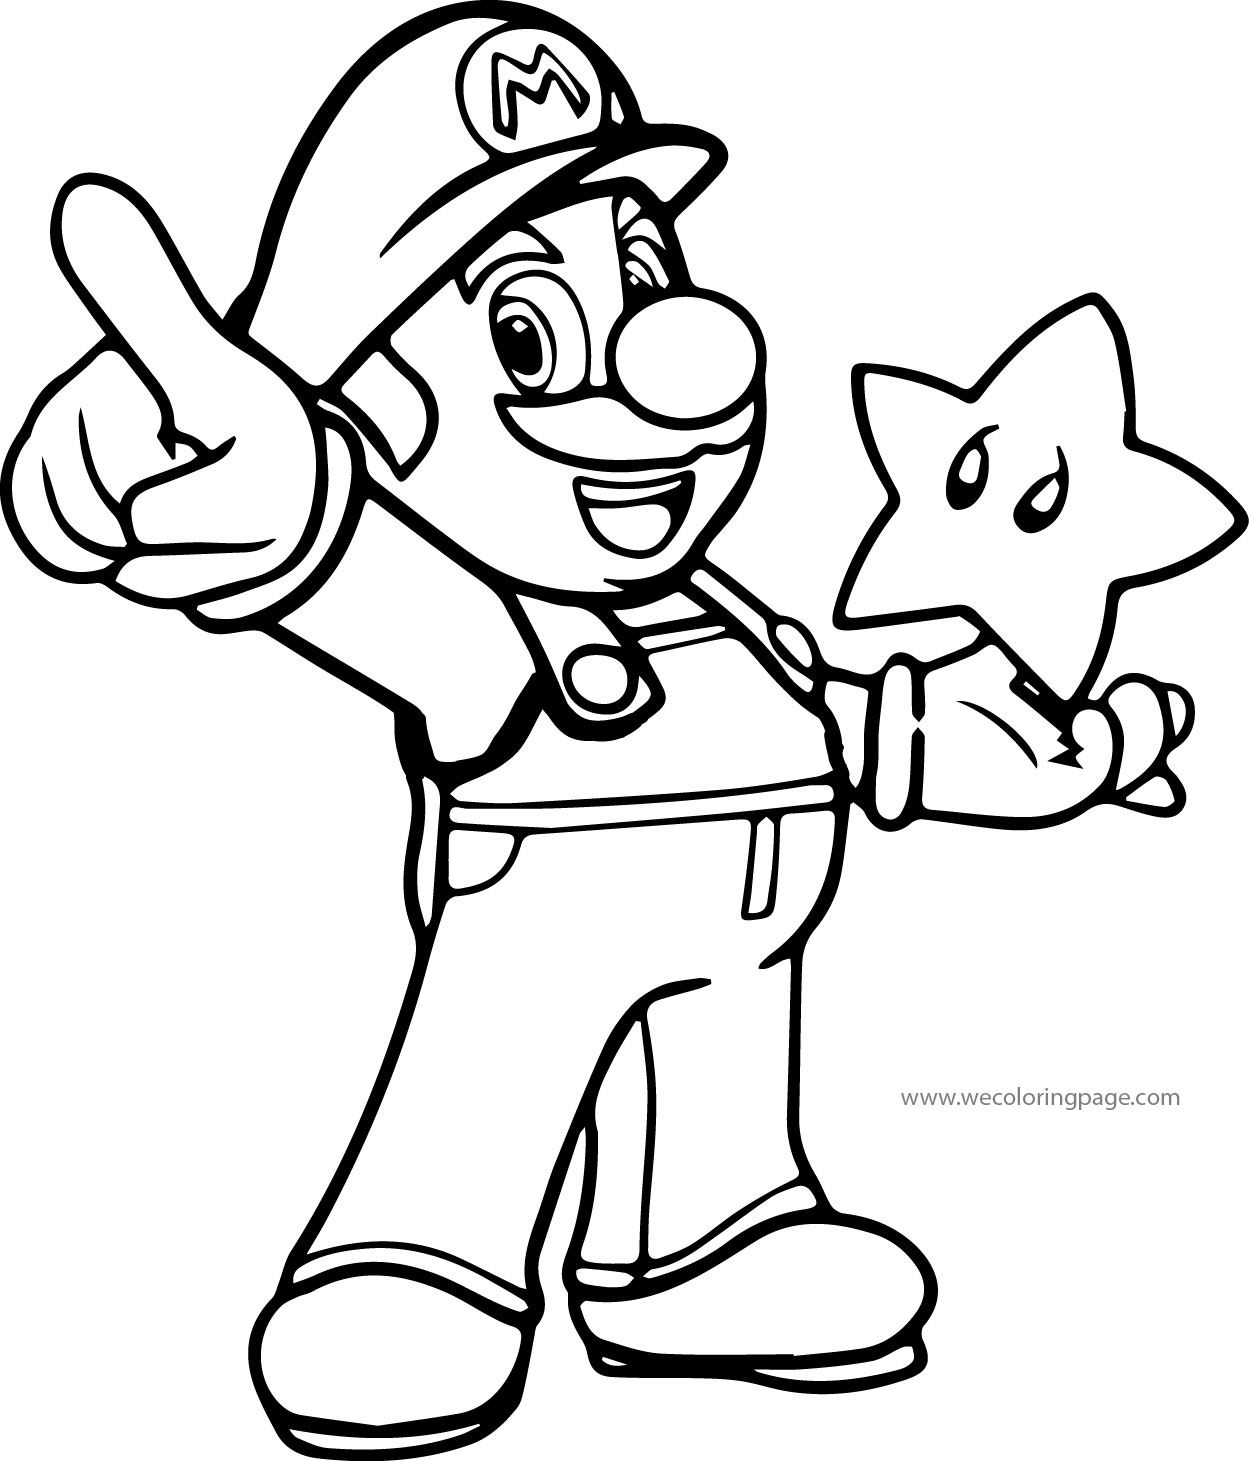 free printable super mario coloring pages 100 coloring pages mario for free print mario and luigi free printable super mario pages coloring